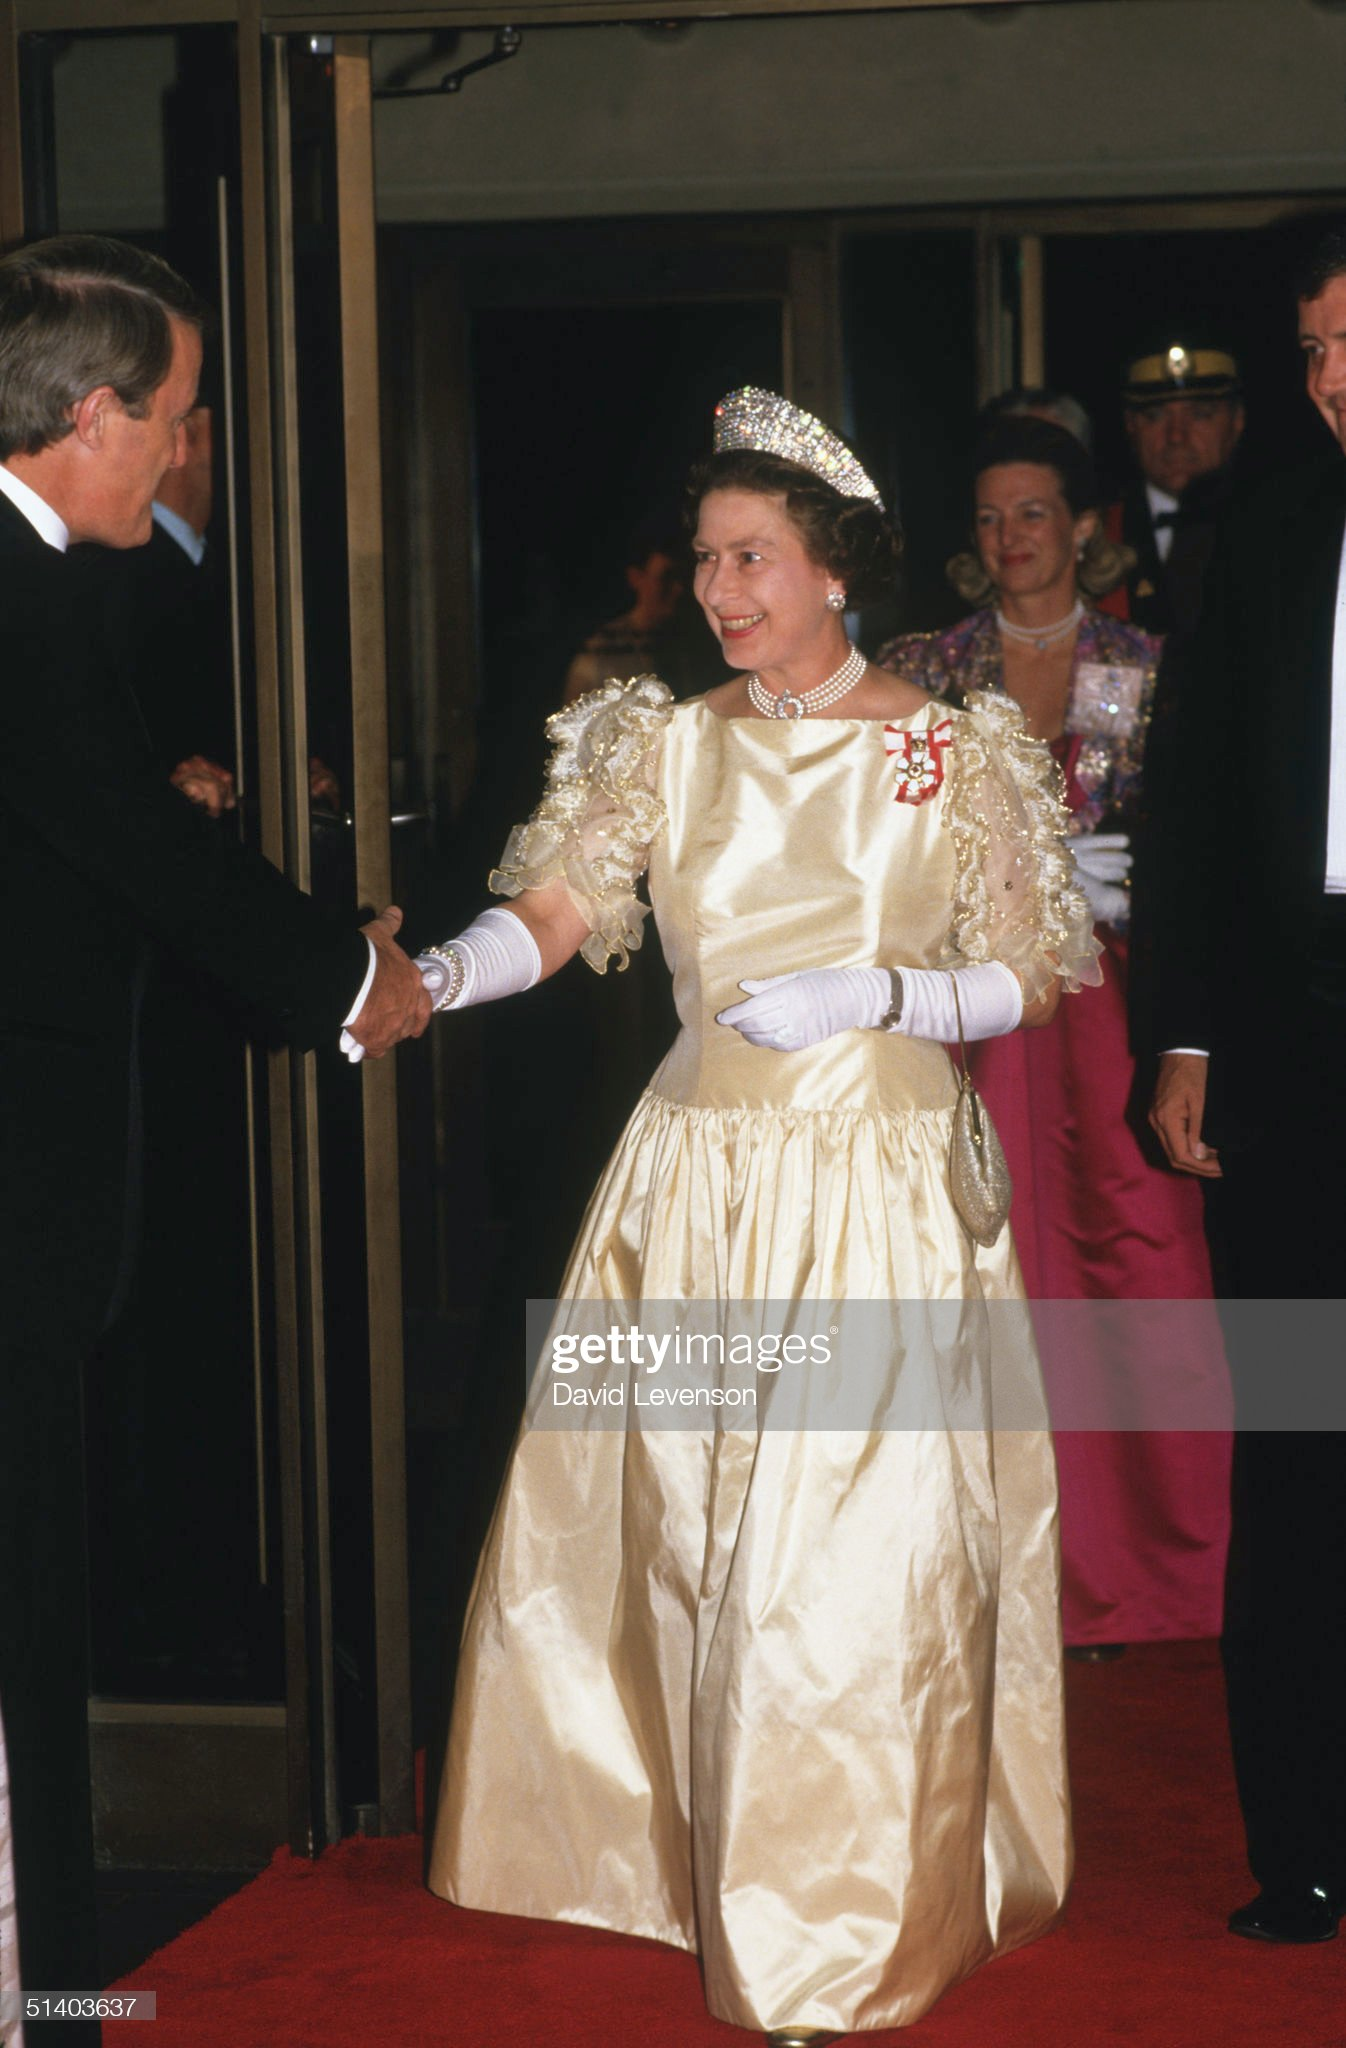 Queen Elizabeth II meets the Canadian Prime Minister Brian Mulroney : News Photo